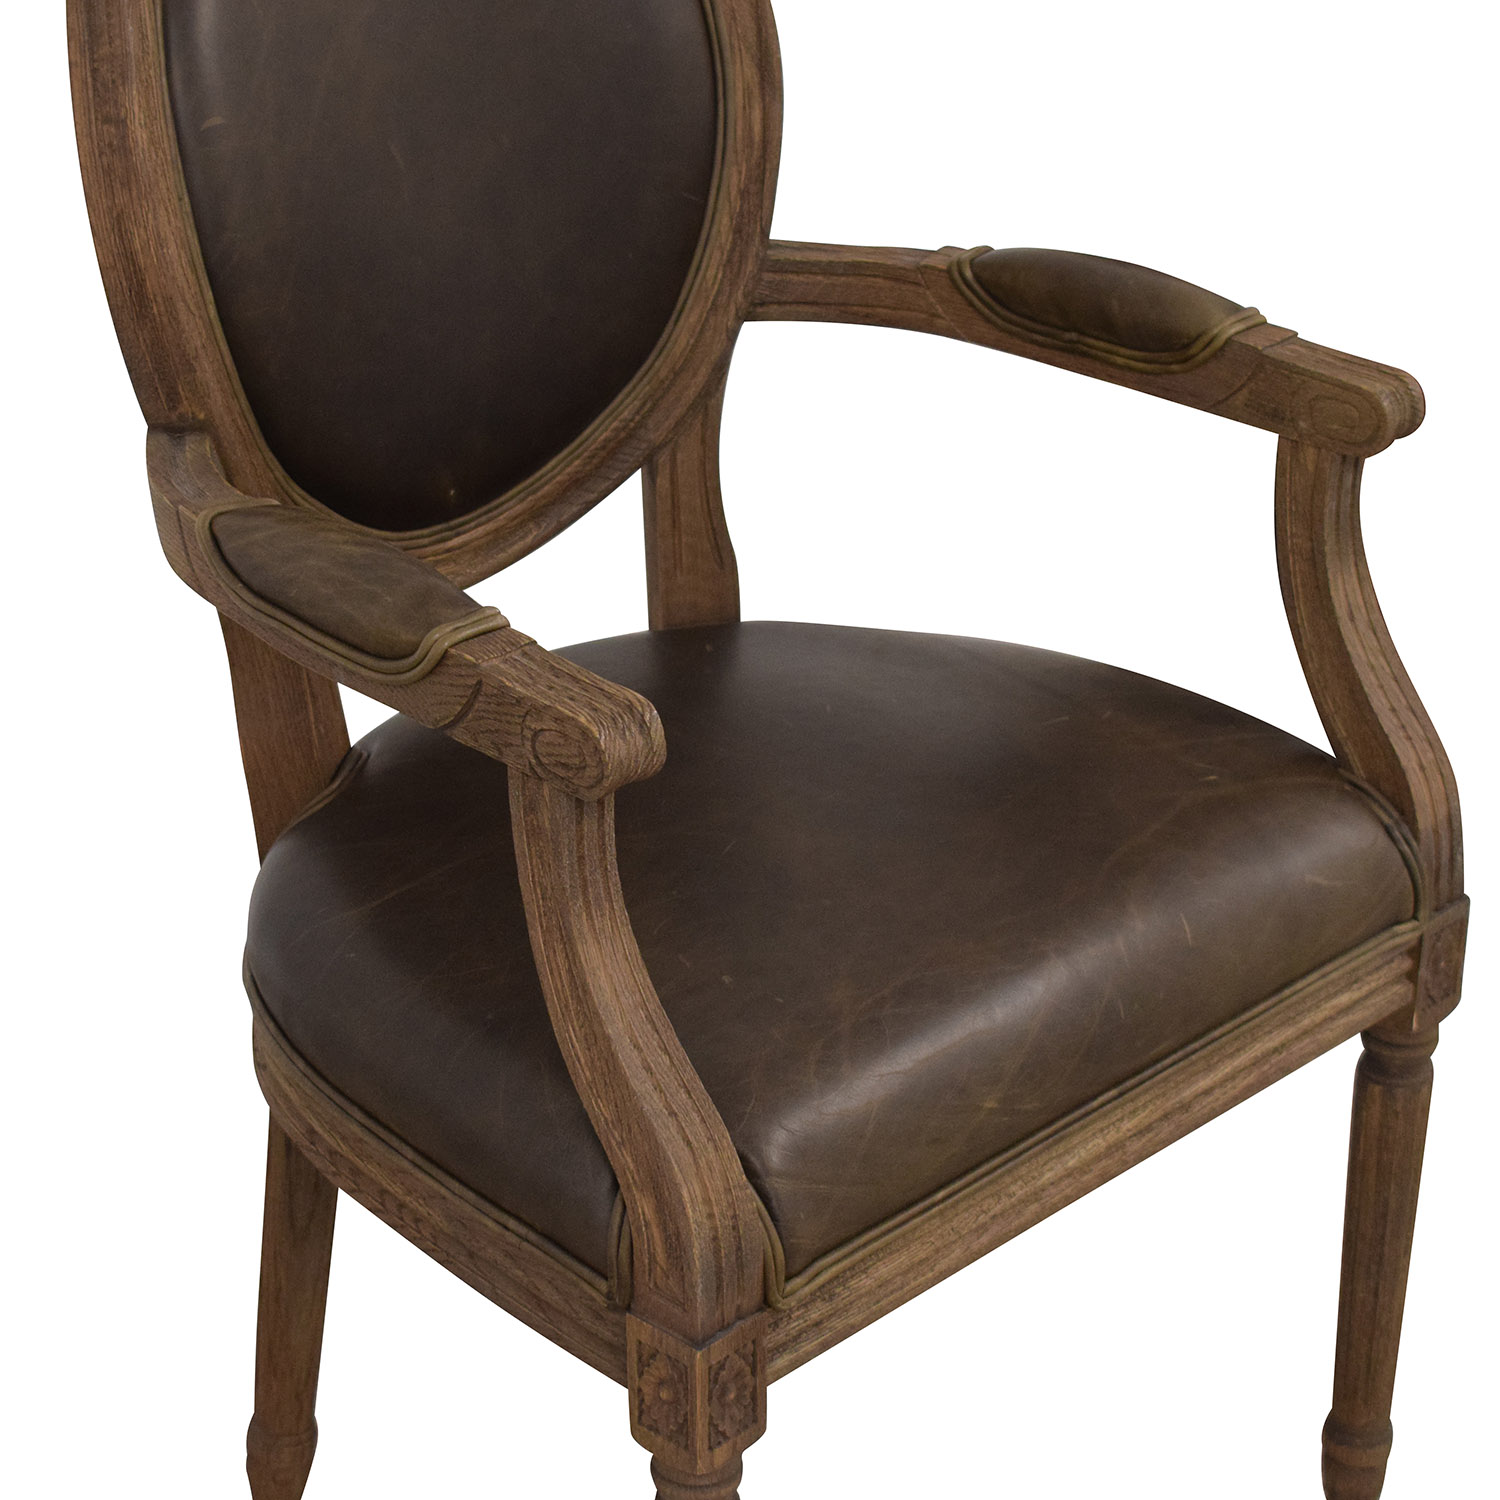 Restoration Hardware Restoration Hardware Vintage French Round Leather Armchairs nj